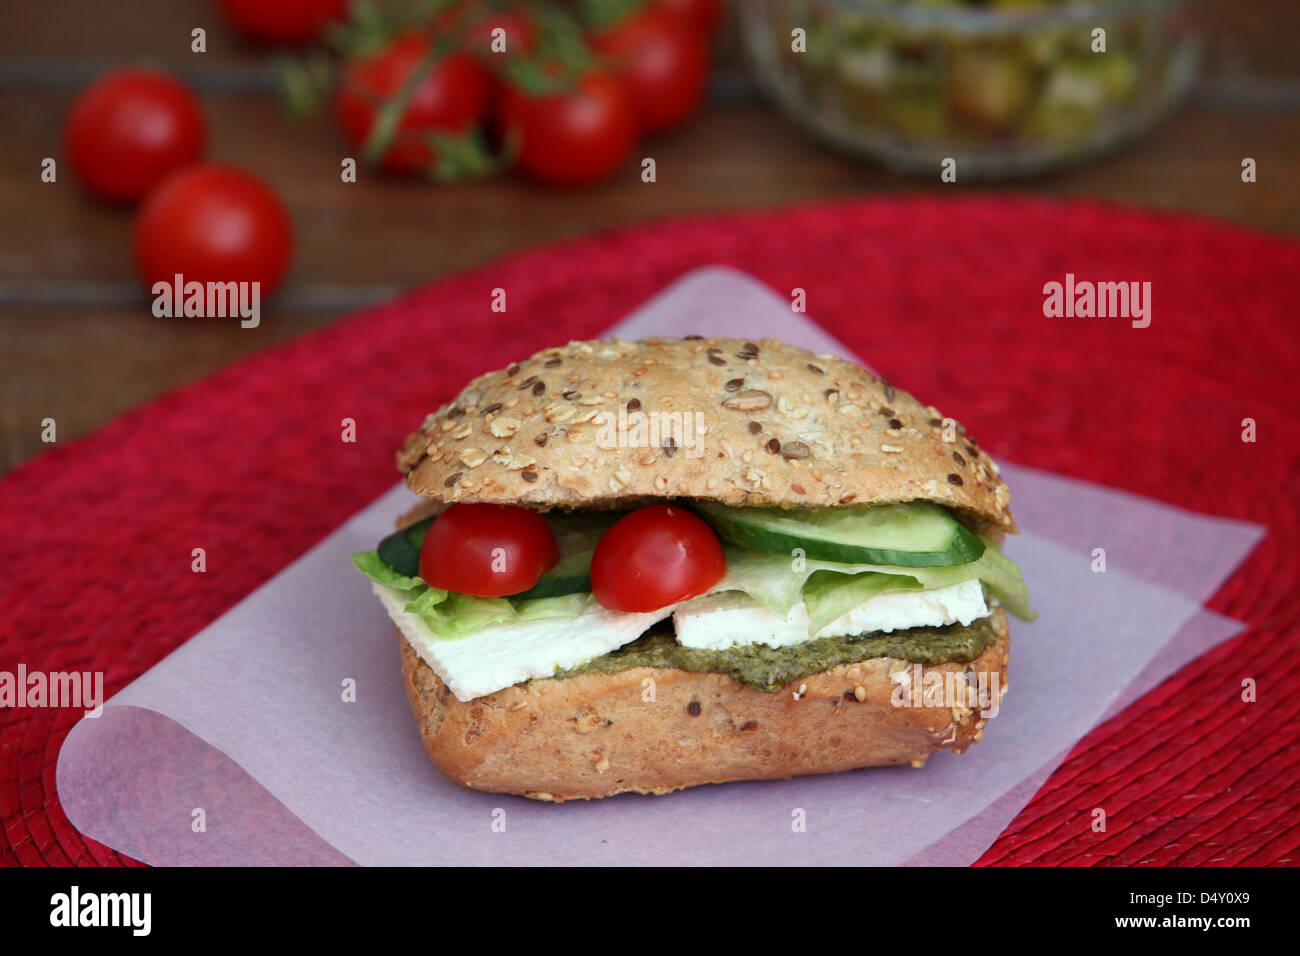 cheese sandwich with tomato and cucumber - Stock Image